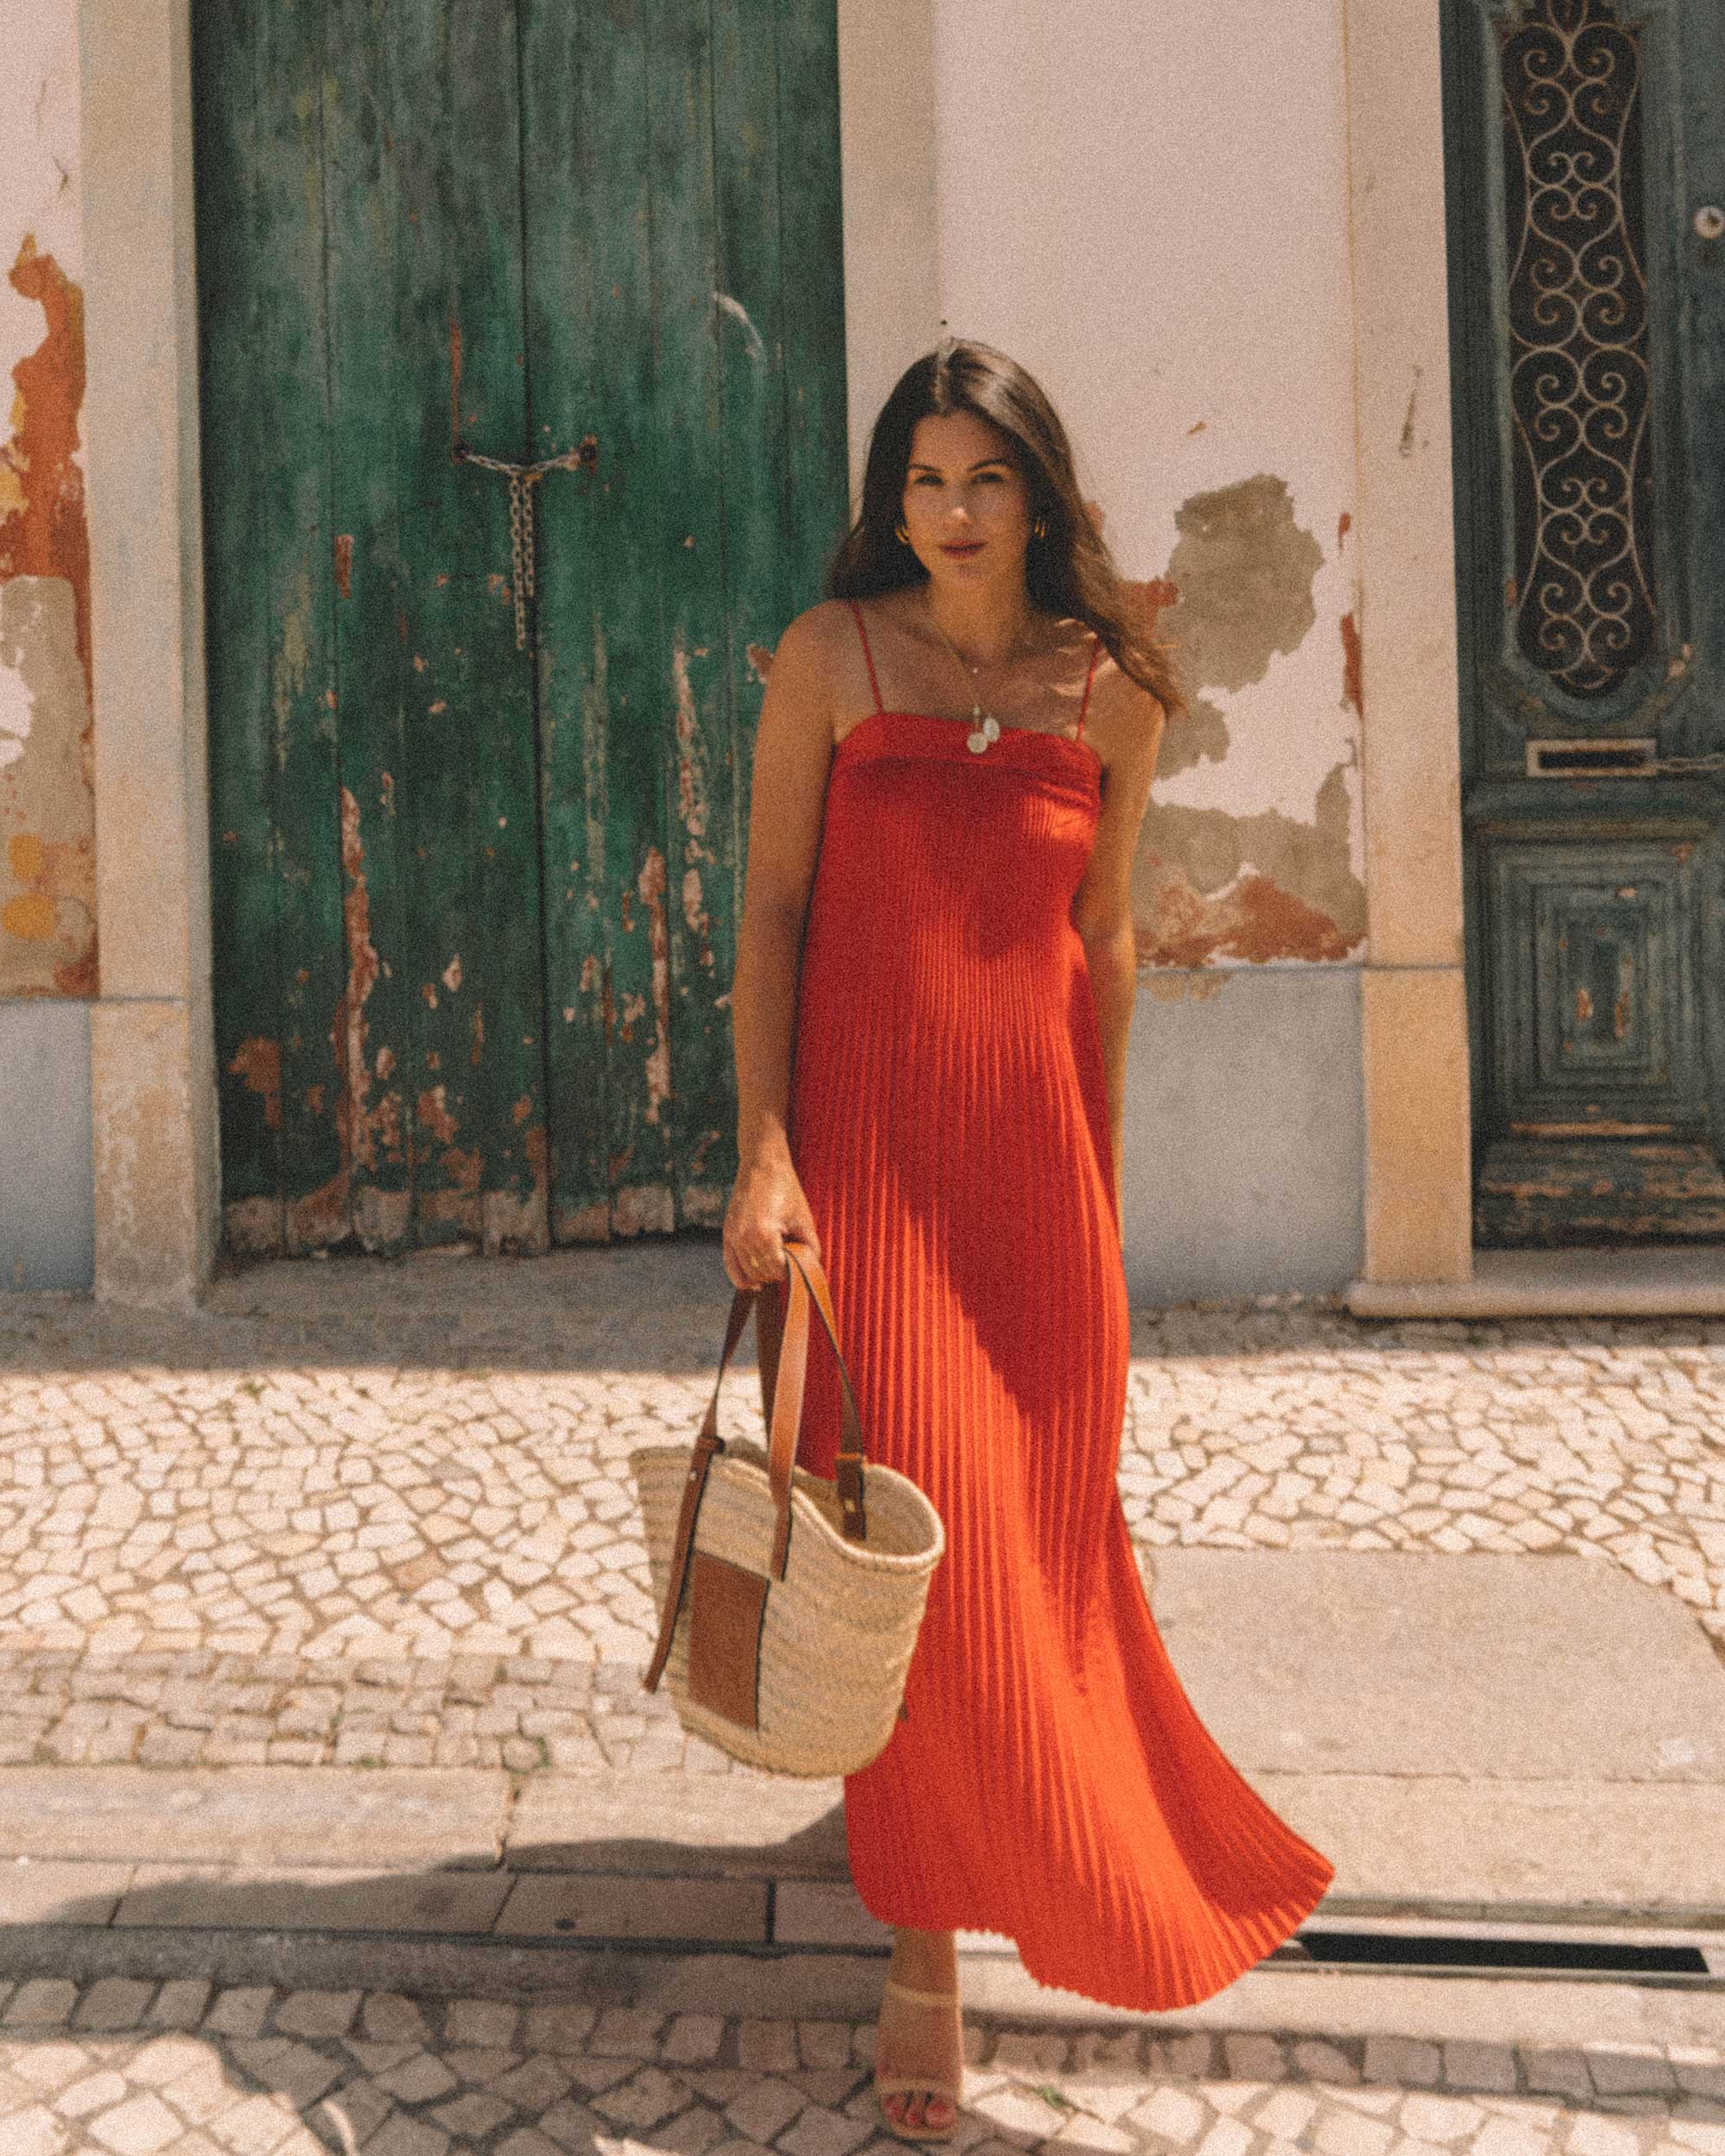 Sarah Butler of Sarah Styles Seattle wears And Other Stories red pleated midi dress with a square cut, spaghetti straps and plisse detailing in Lisbon, Portugal | @sarahchristine -5.jpg